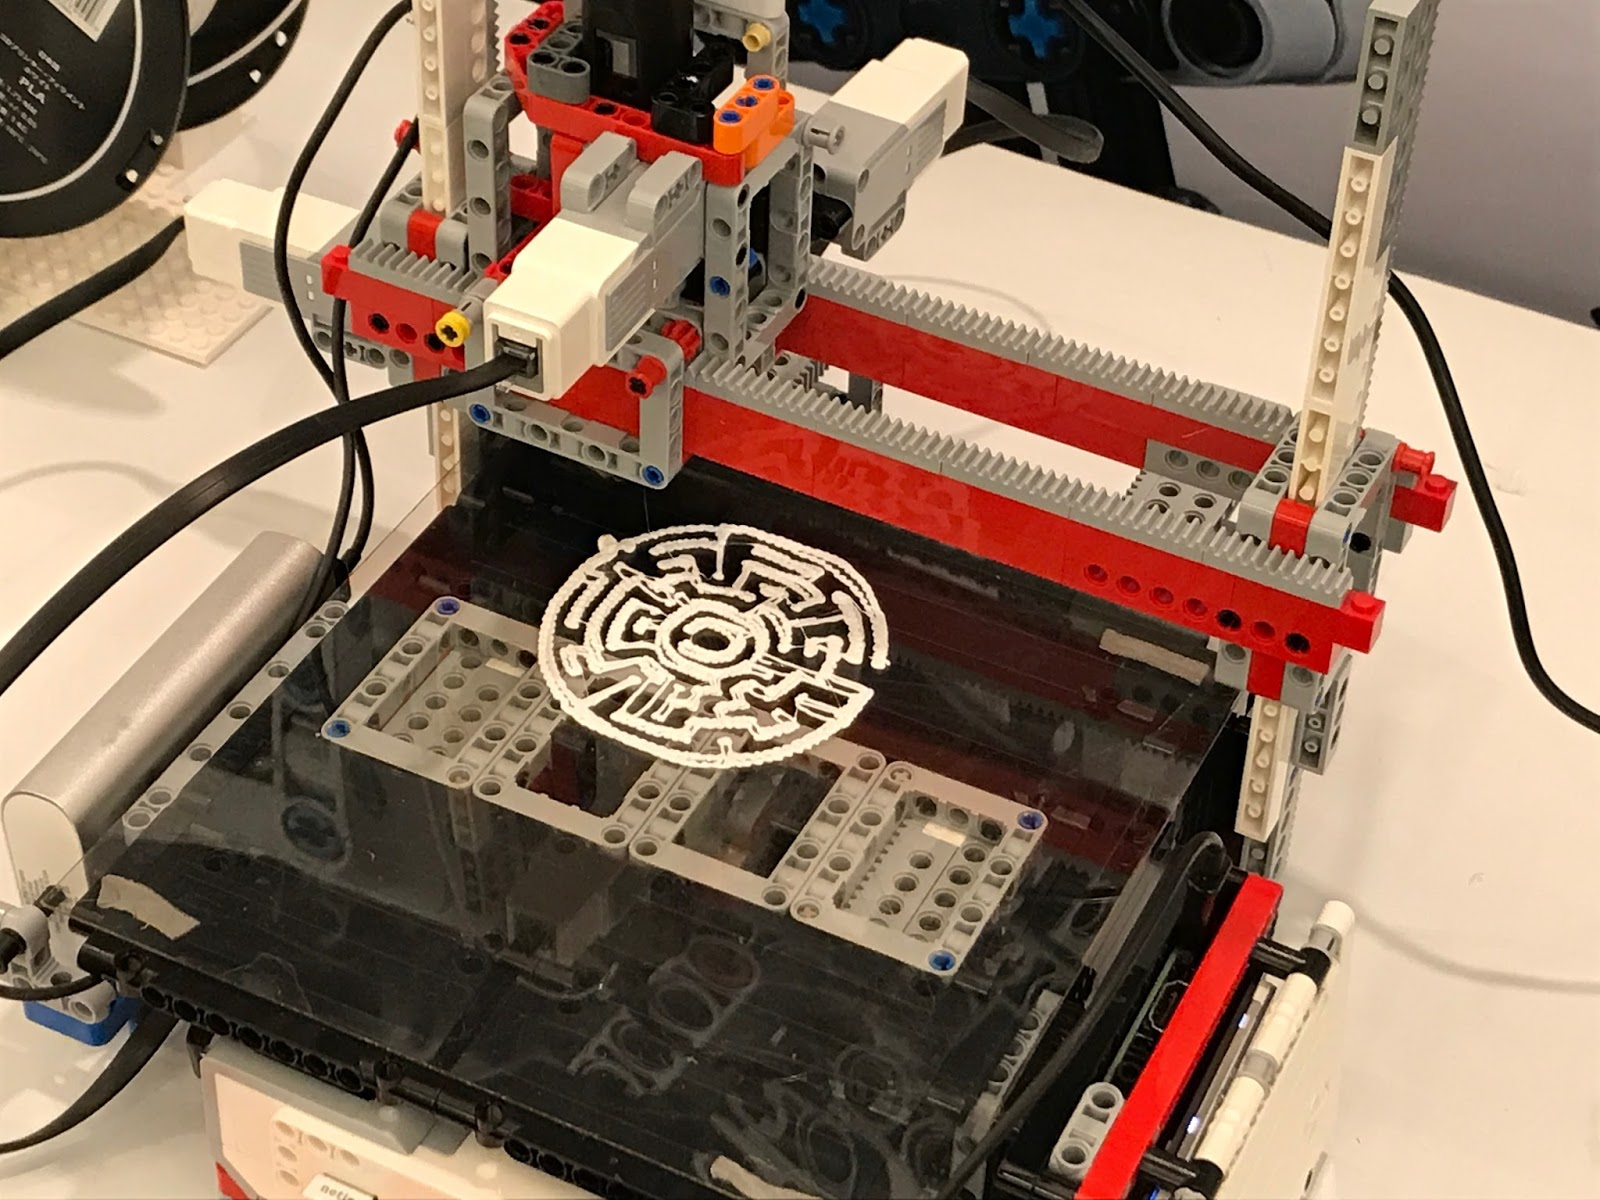 3D Printers Made with MINDSTORMS | The NXT STEP is EV3 - LEGO